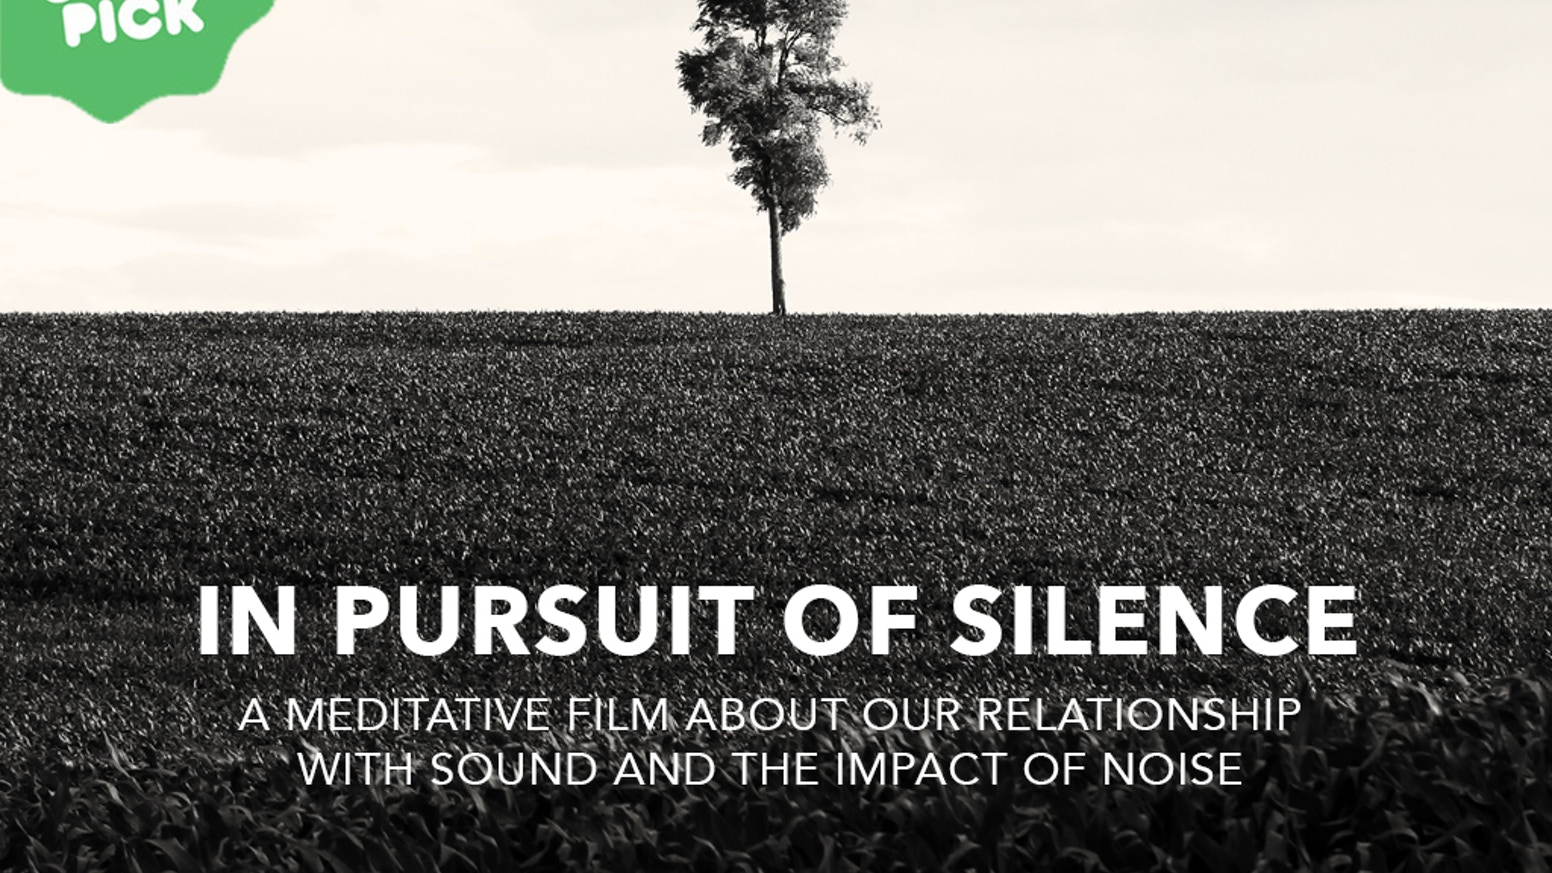 A meditative film about our relationship with sound and the impact of noise on our lives.(name of campaign creator Transcendental Media has changed to Patrick Shen)